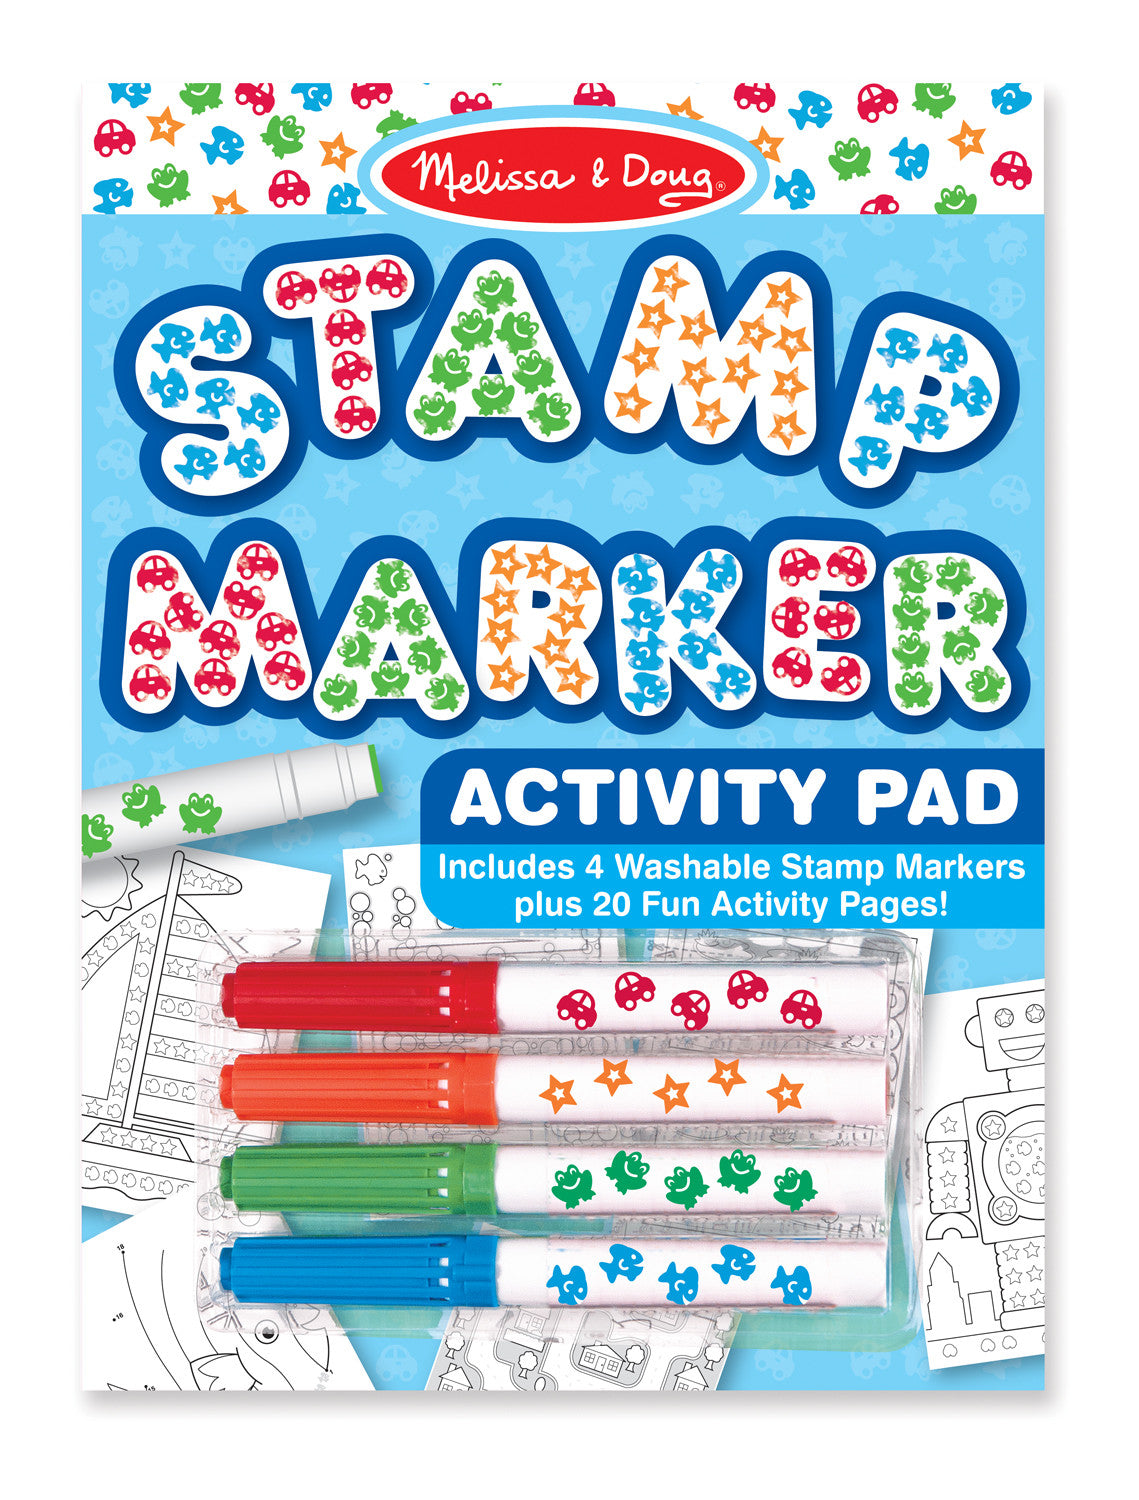 Melissa & Doug Stamp Marker Activity Pad - Blue 2422